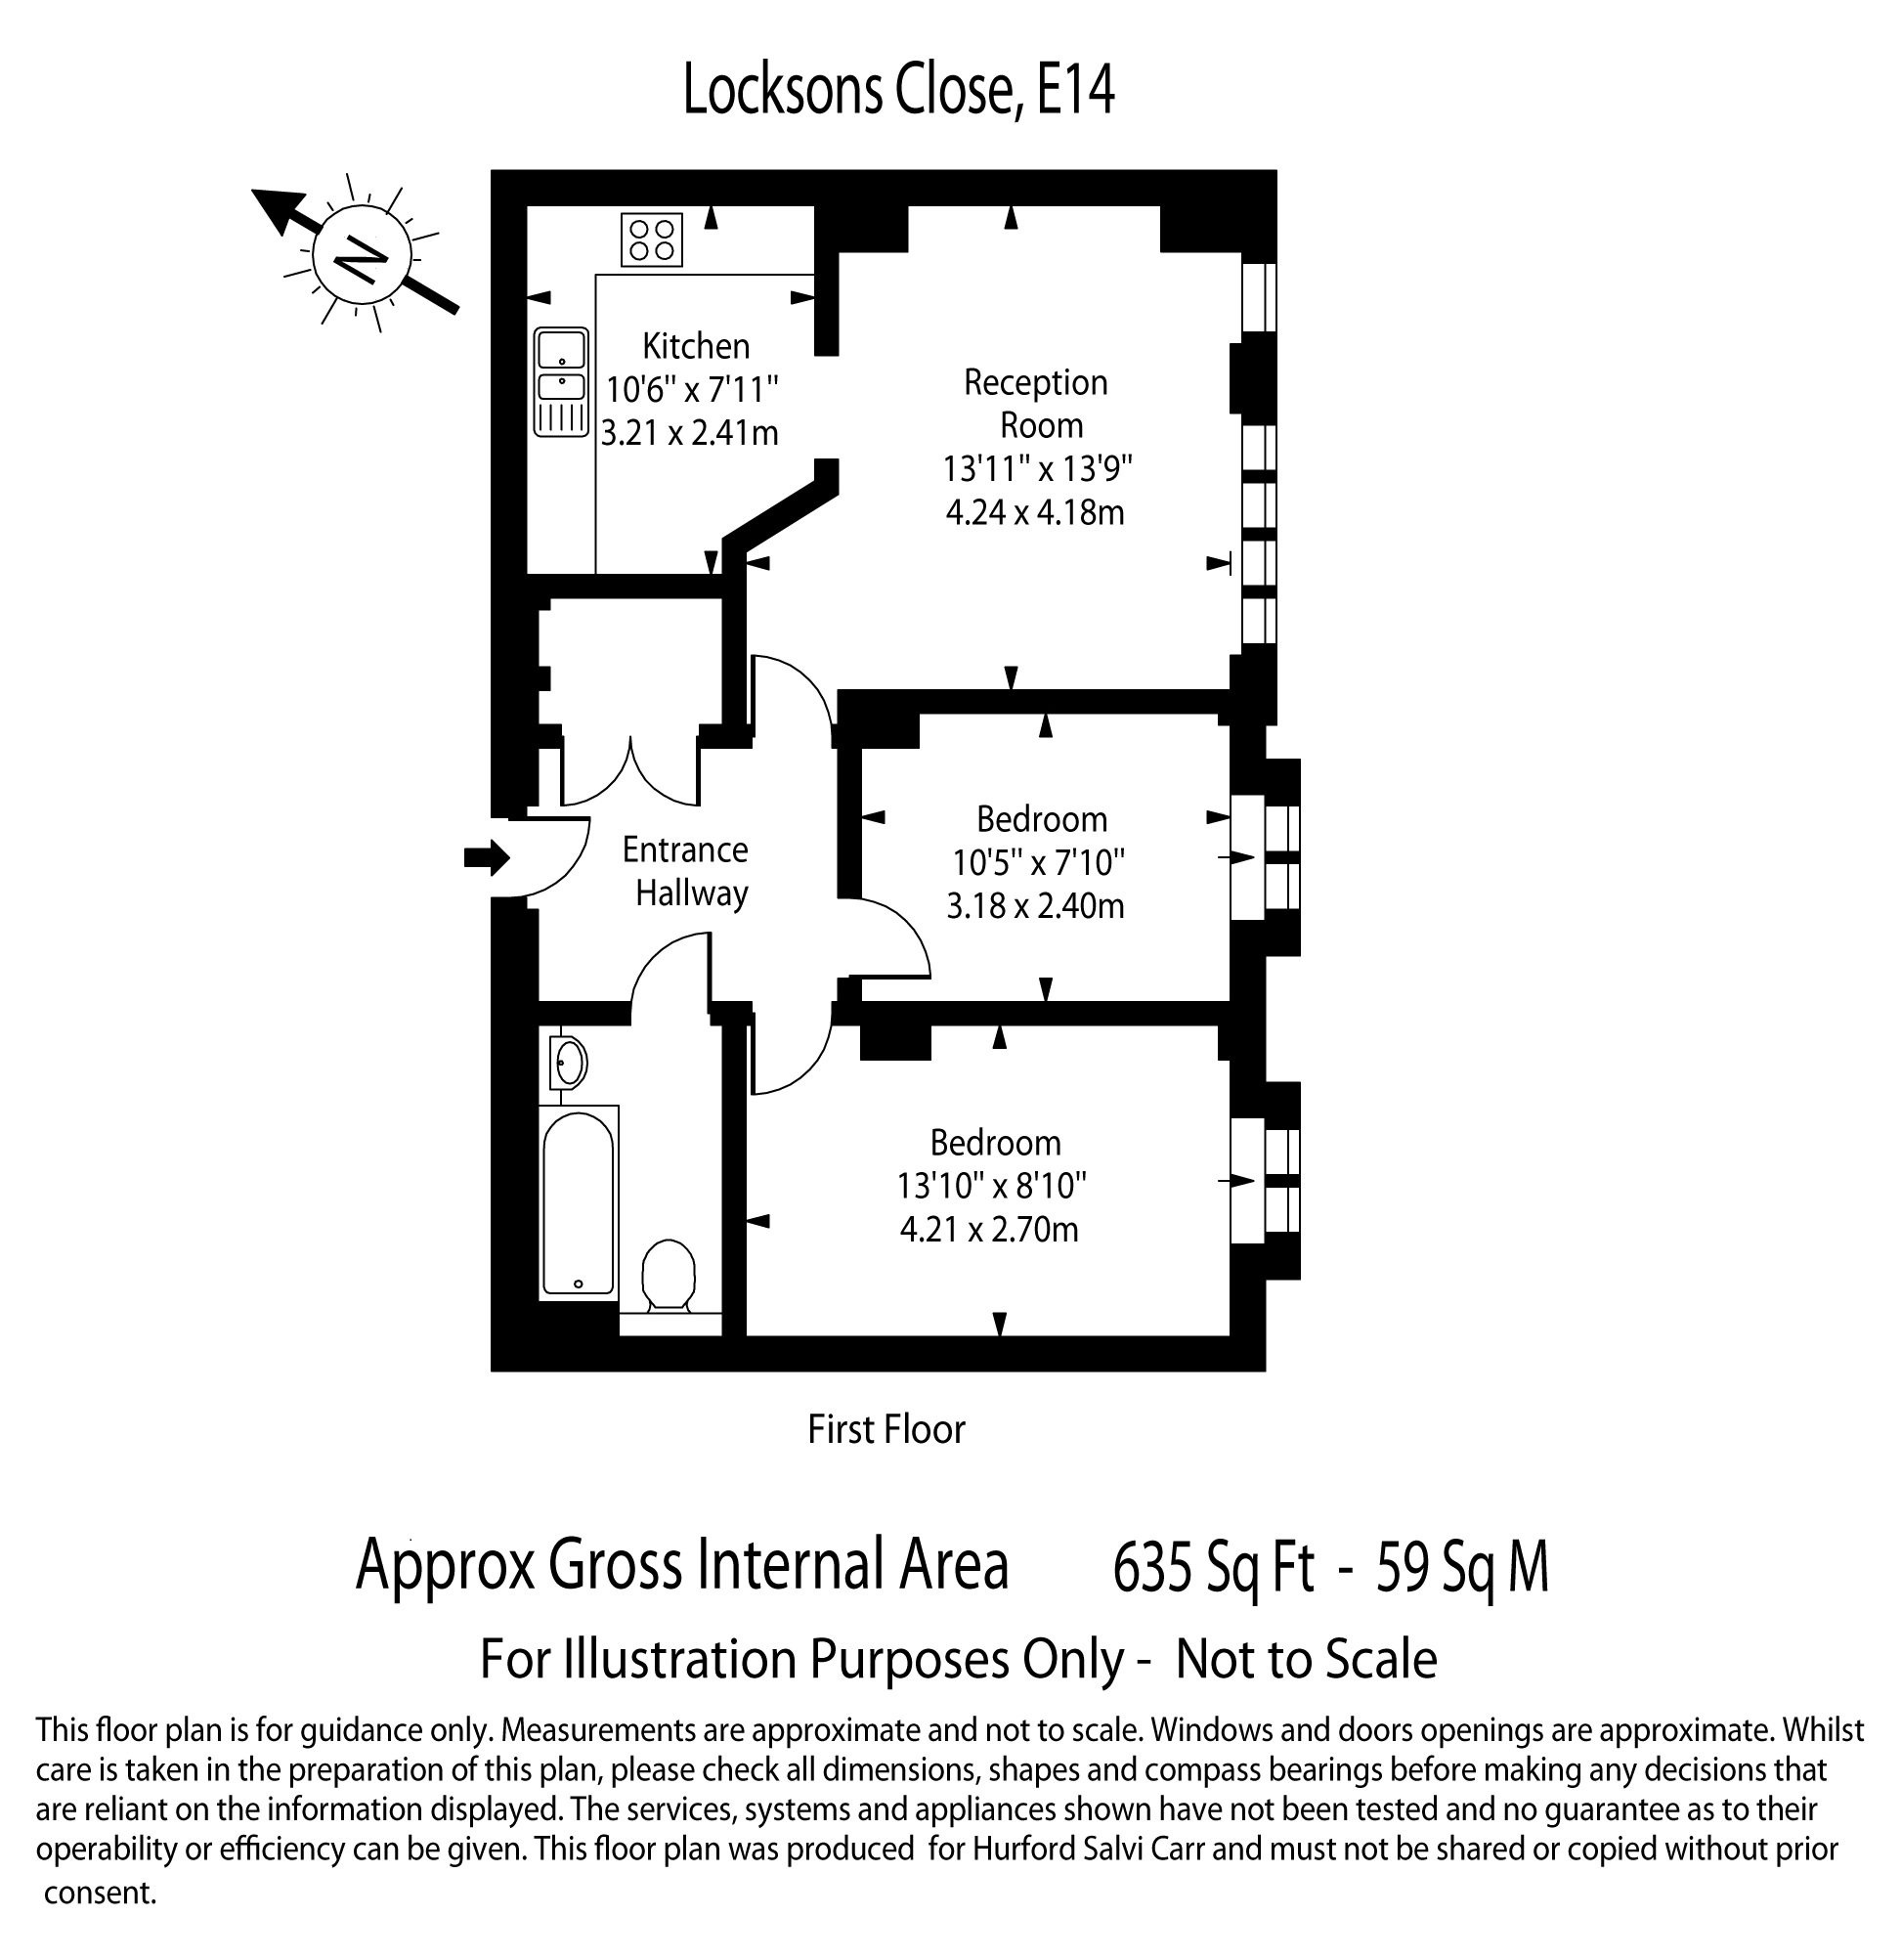 Locksons Close, Poplar, E14 floorplan